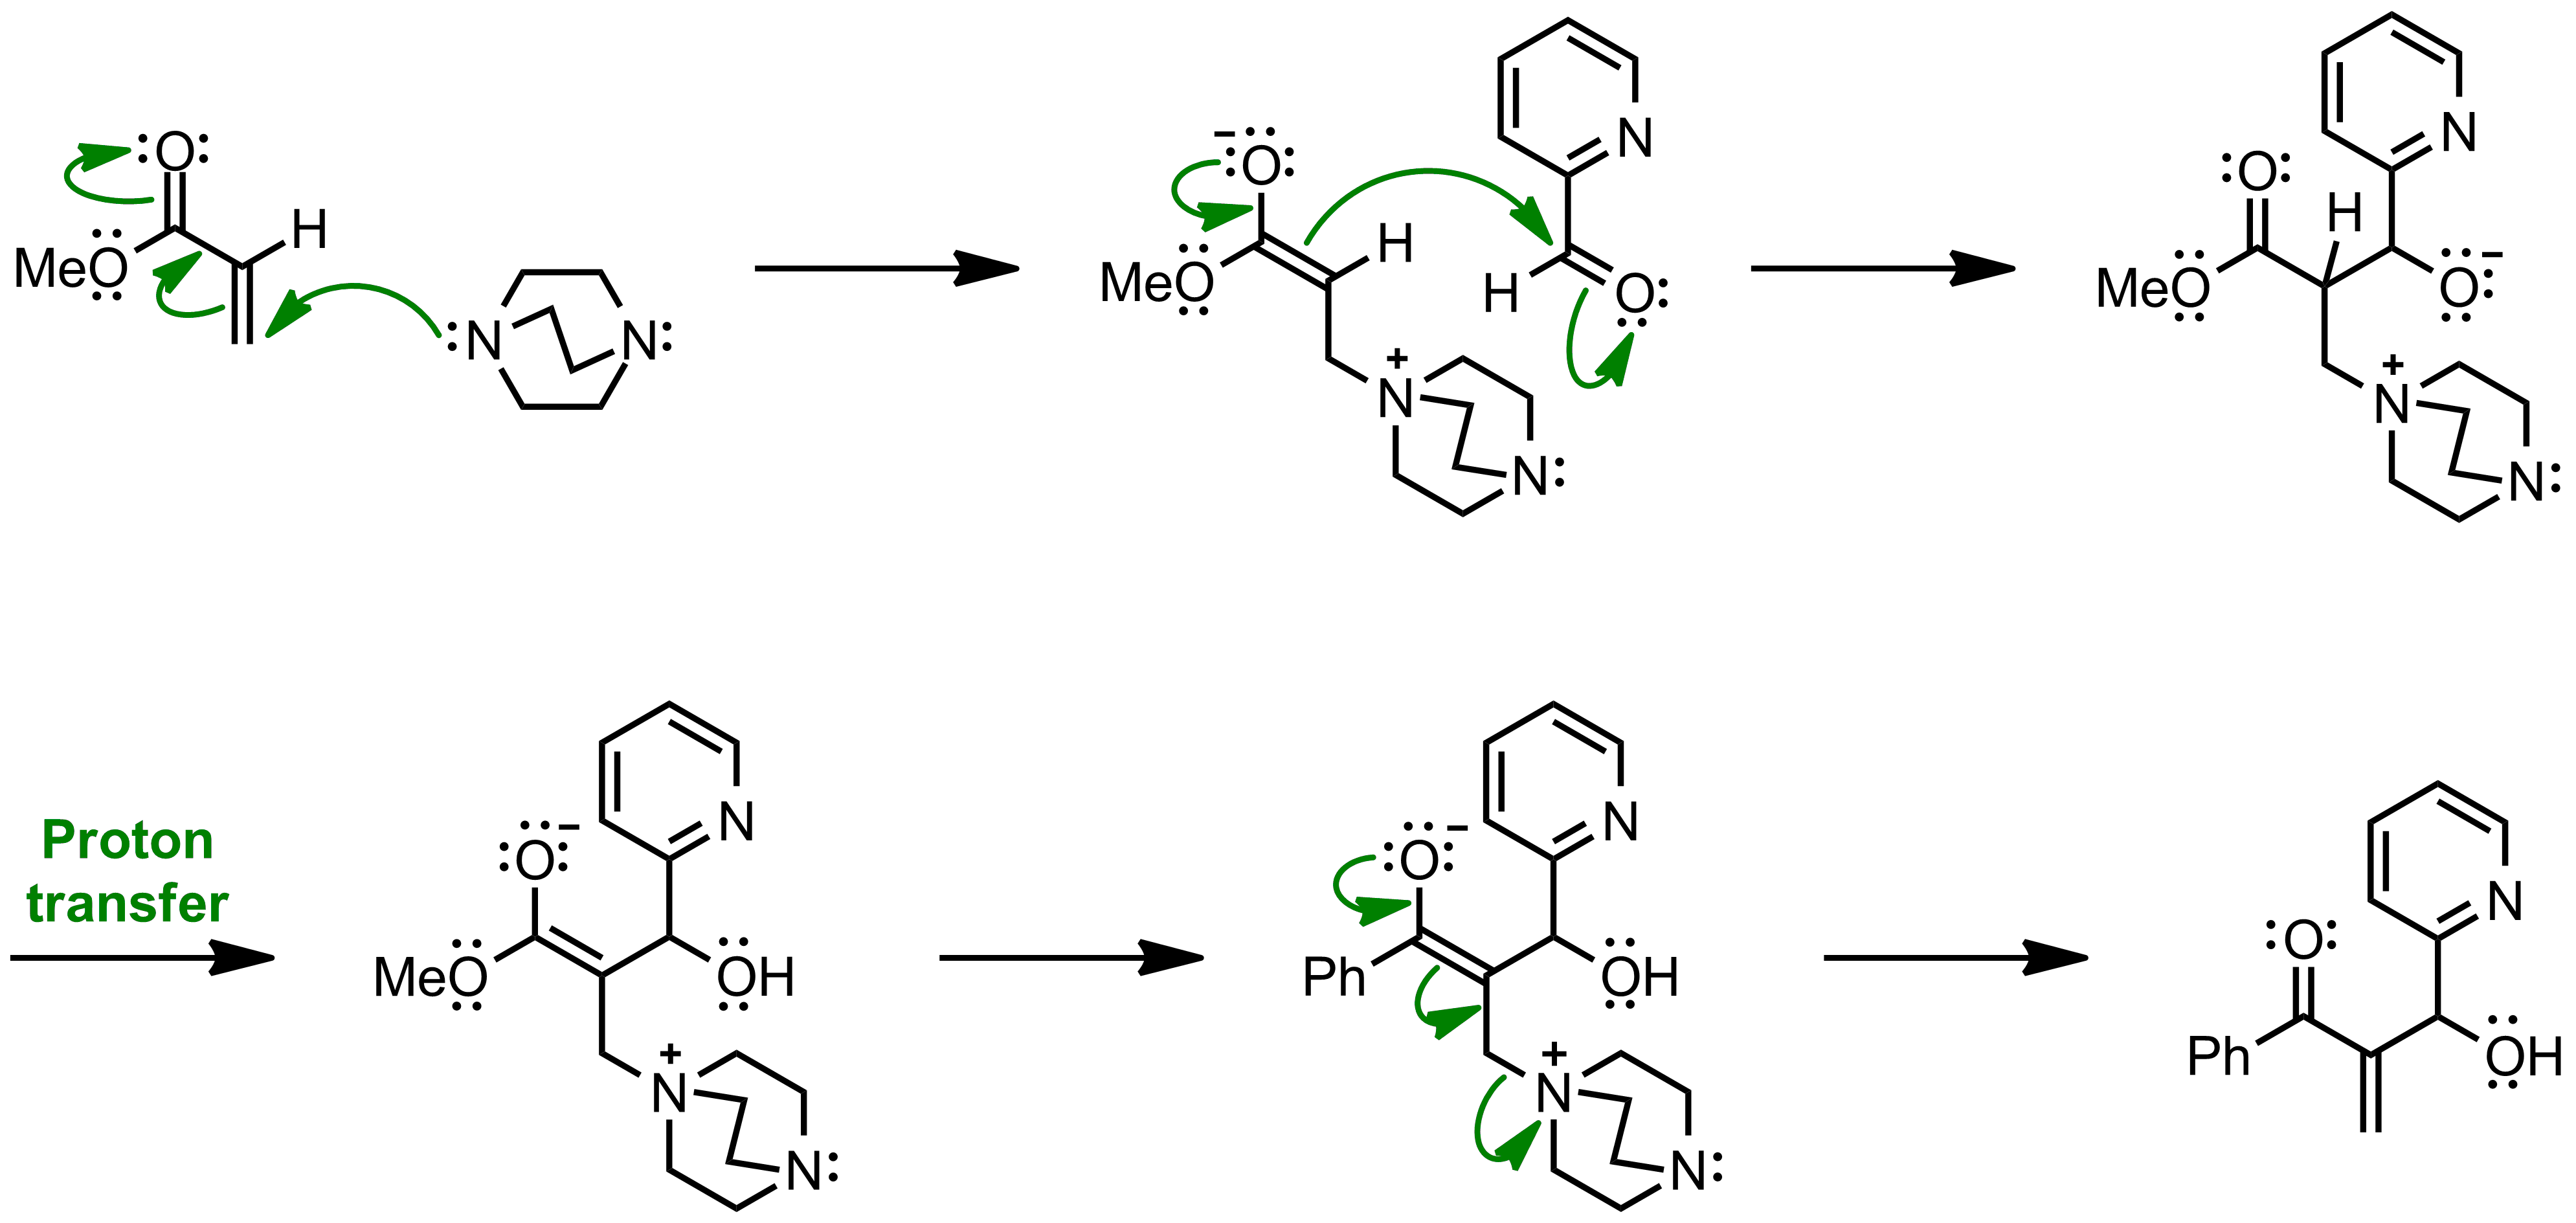 Mechanism of the Morita-Baylis-Hillman Reaction